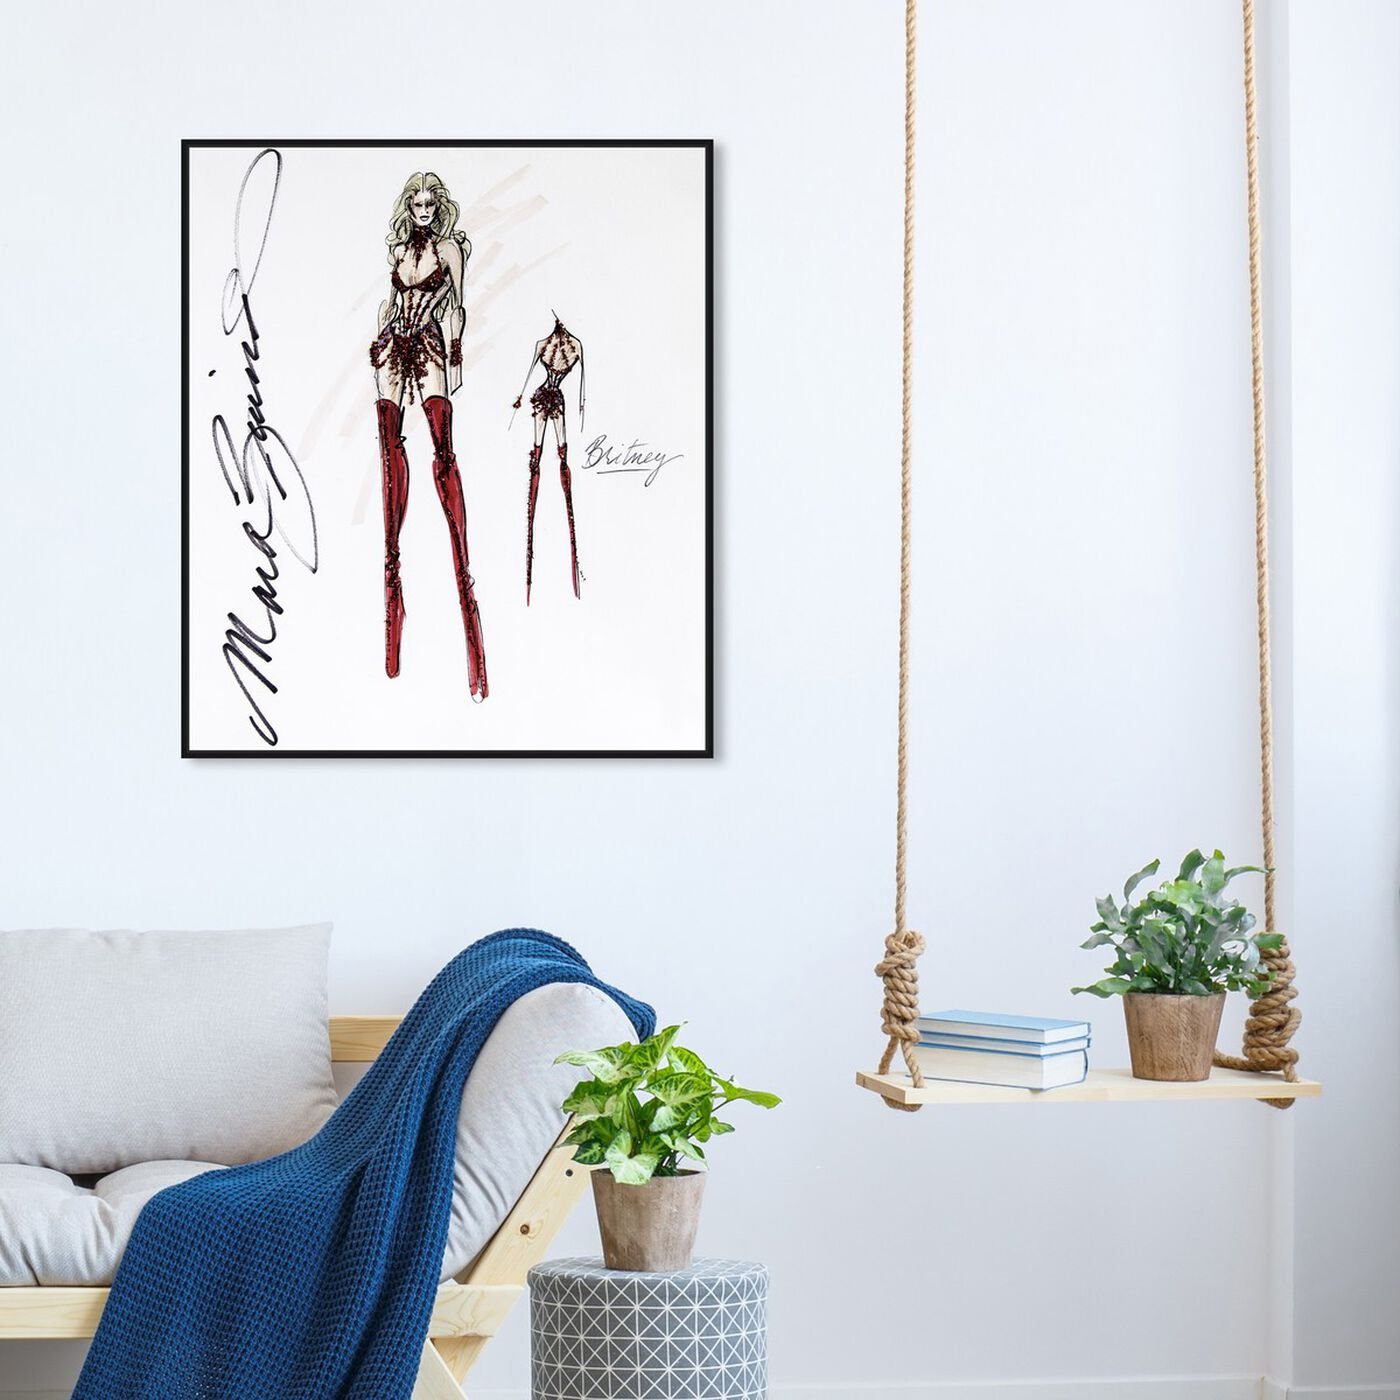 Hanging view of Mark Zunino - Diva Britney featuring fashion and glam and sketches art.